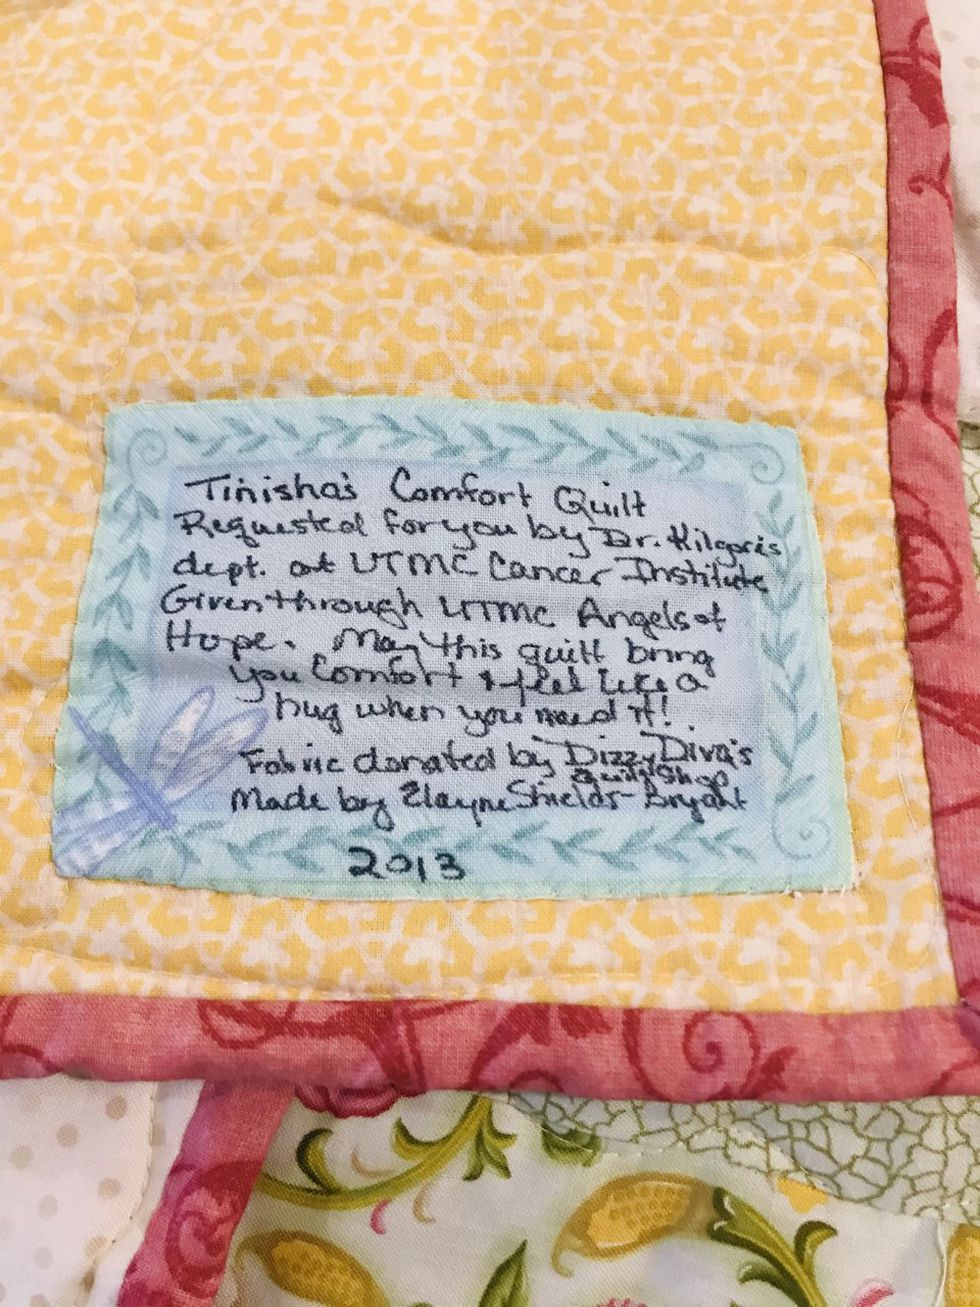 Quilt gifted to UTMC cervical cancer patients